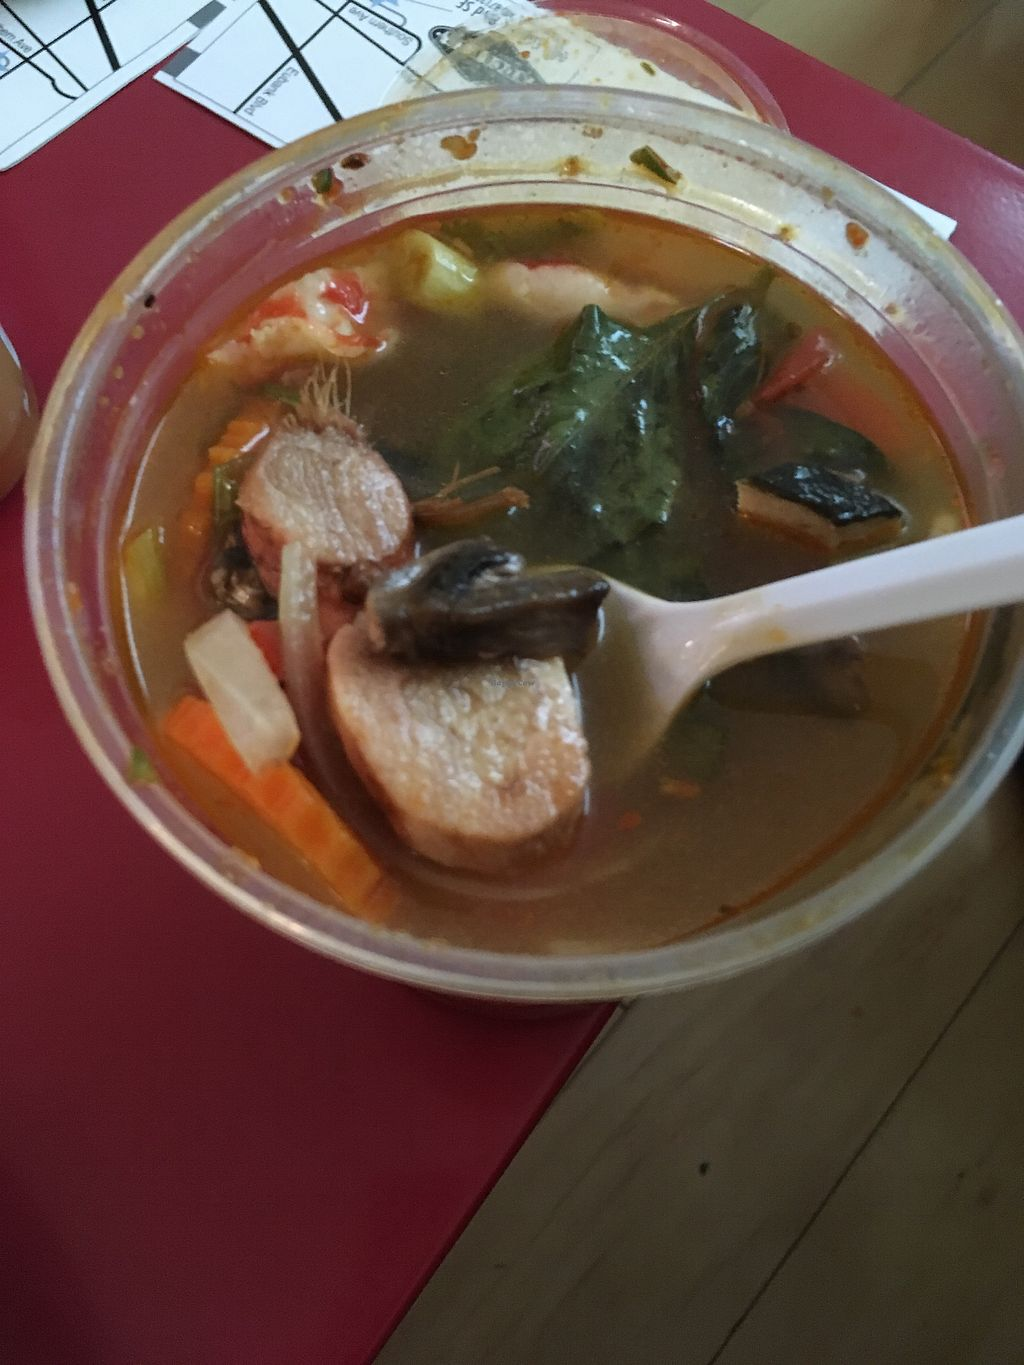 """Photo of Thai Vegan - Nob Hill  by <a href=""""/members/profile/AlexandraPhillips"""">AlexandraPhillips</a> <br/>spicy seafood soup  <br/> August 2, 2017  - <a href='/contact/abuse/image/35625/287984'>Report</a>"""